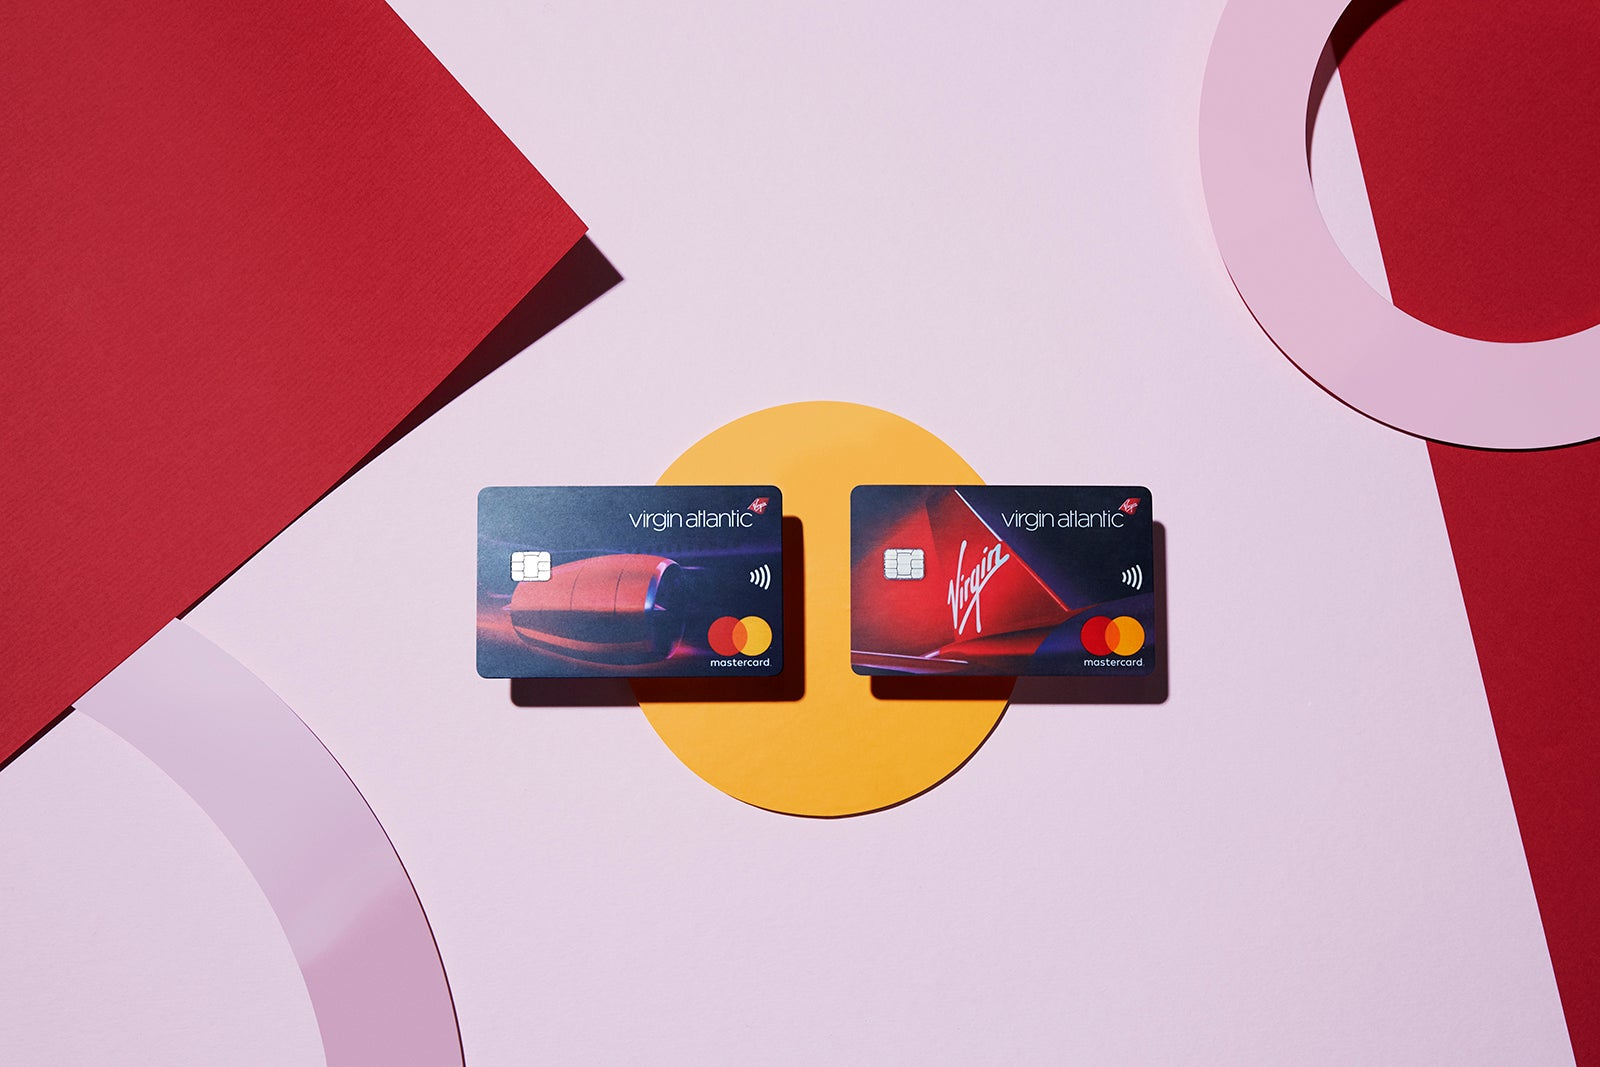 Earn up to 30,000 Virgin Points with increased Virgin Atlantic Reward Card sign-up bonuses - The Points Guy UK